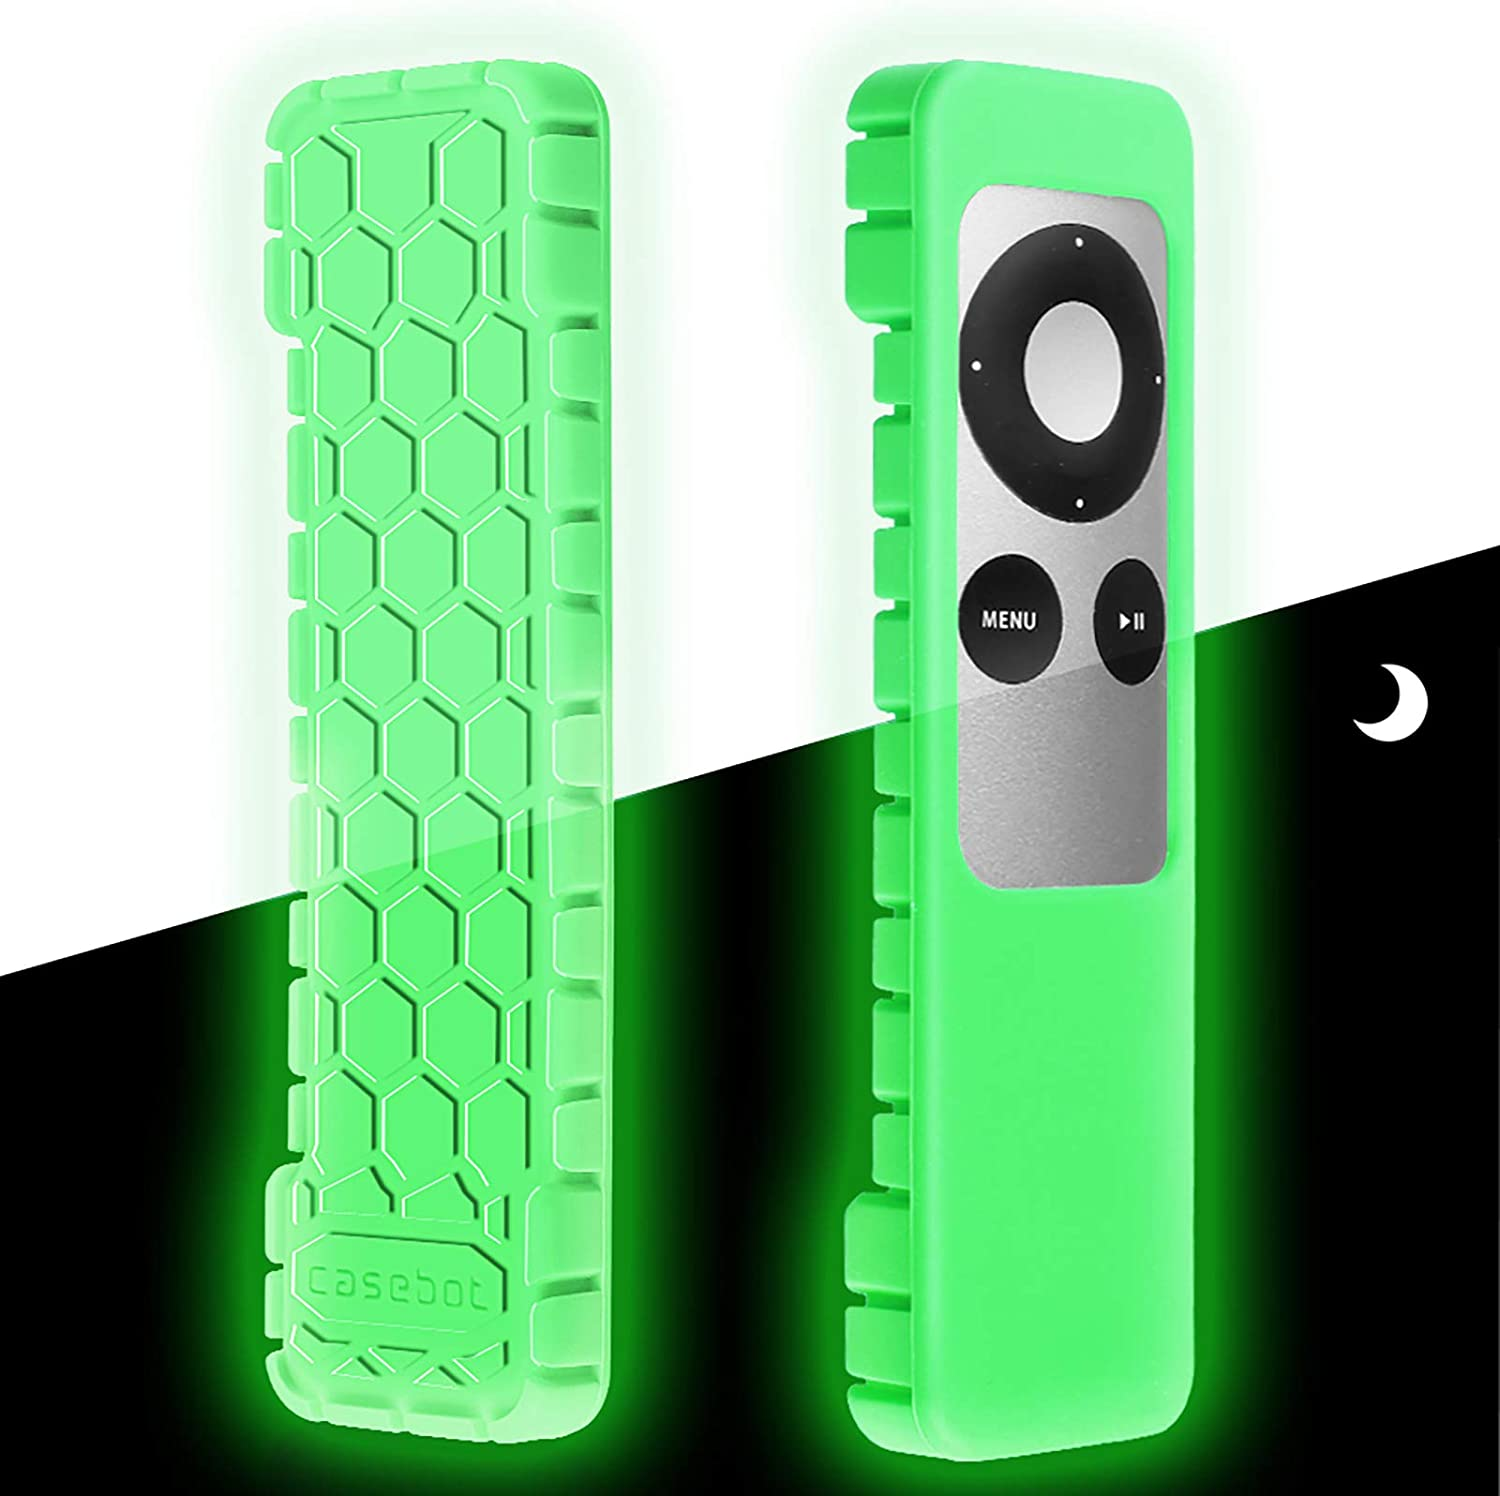 Fintie Protective Case for Apple TV 2 3 Remote Controller - CaseBot (Honey Comb Series) Light Weight (Anti Slip) Shock Proof Silicone Sleeve Cover, Green Glow in The Dark